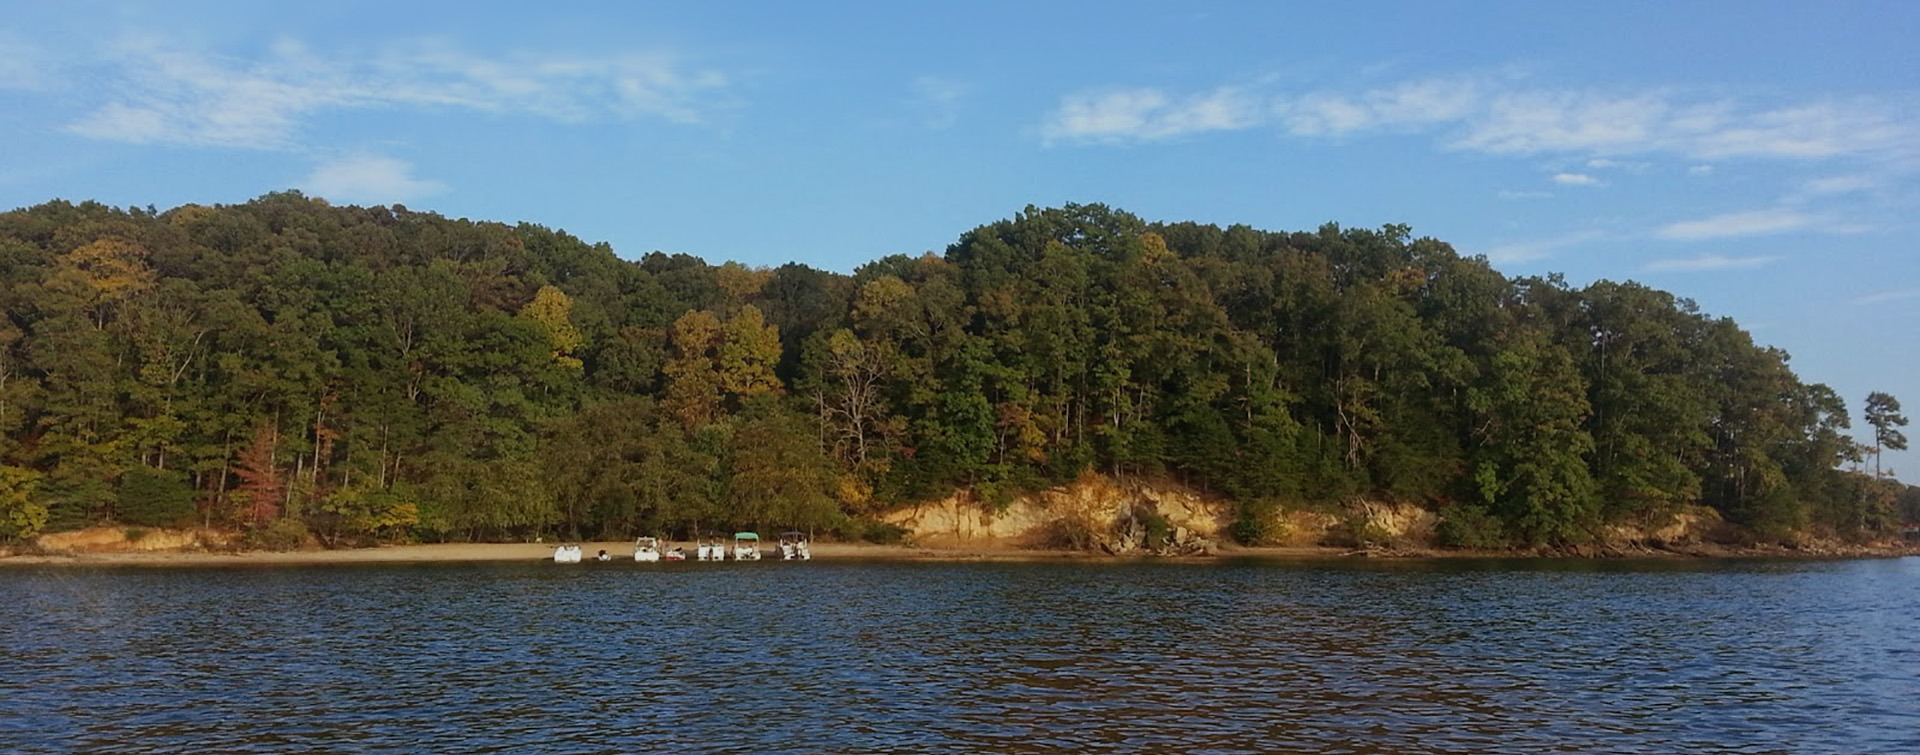 Lake Lanier shore line with boats in the distance